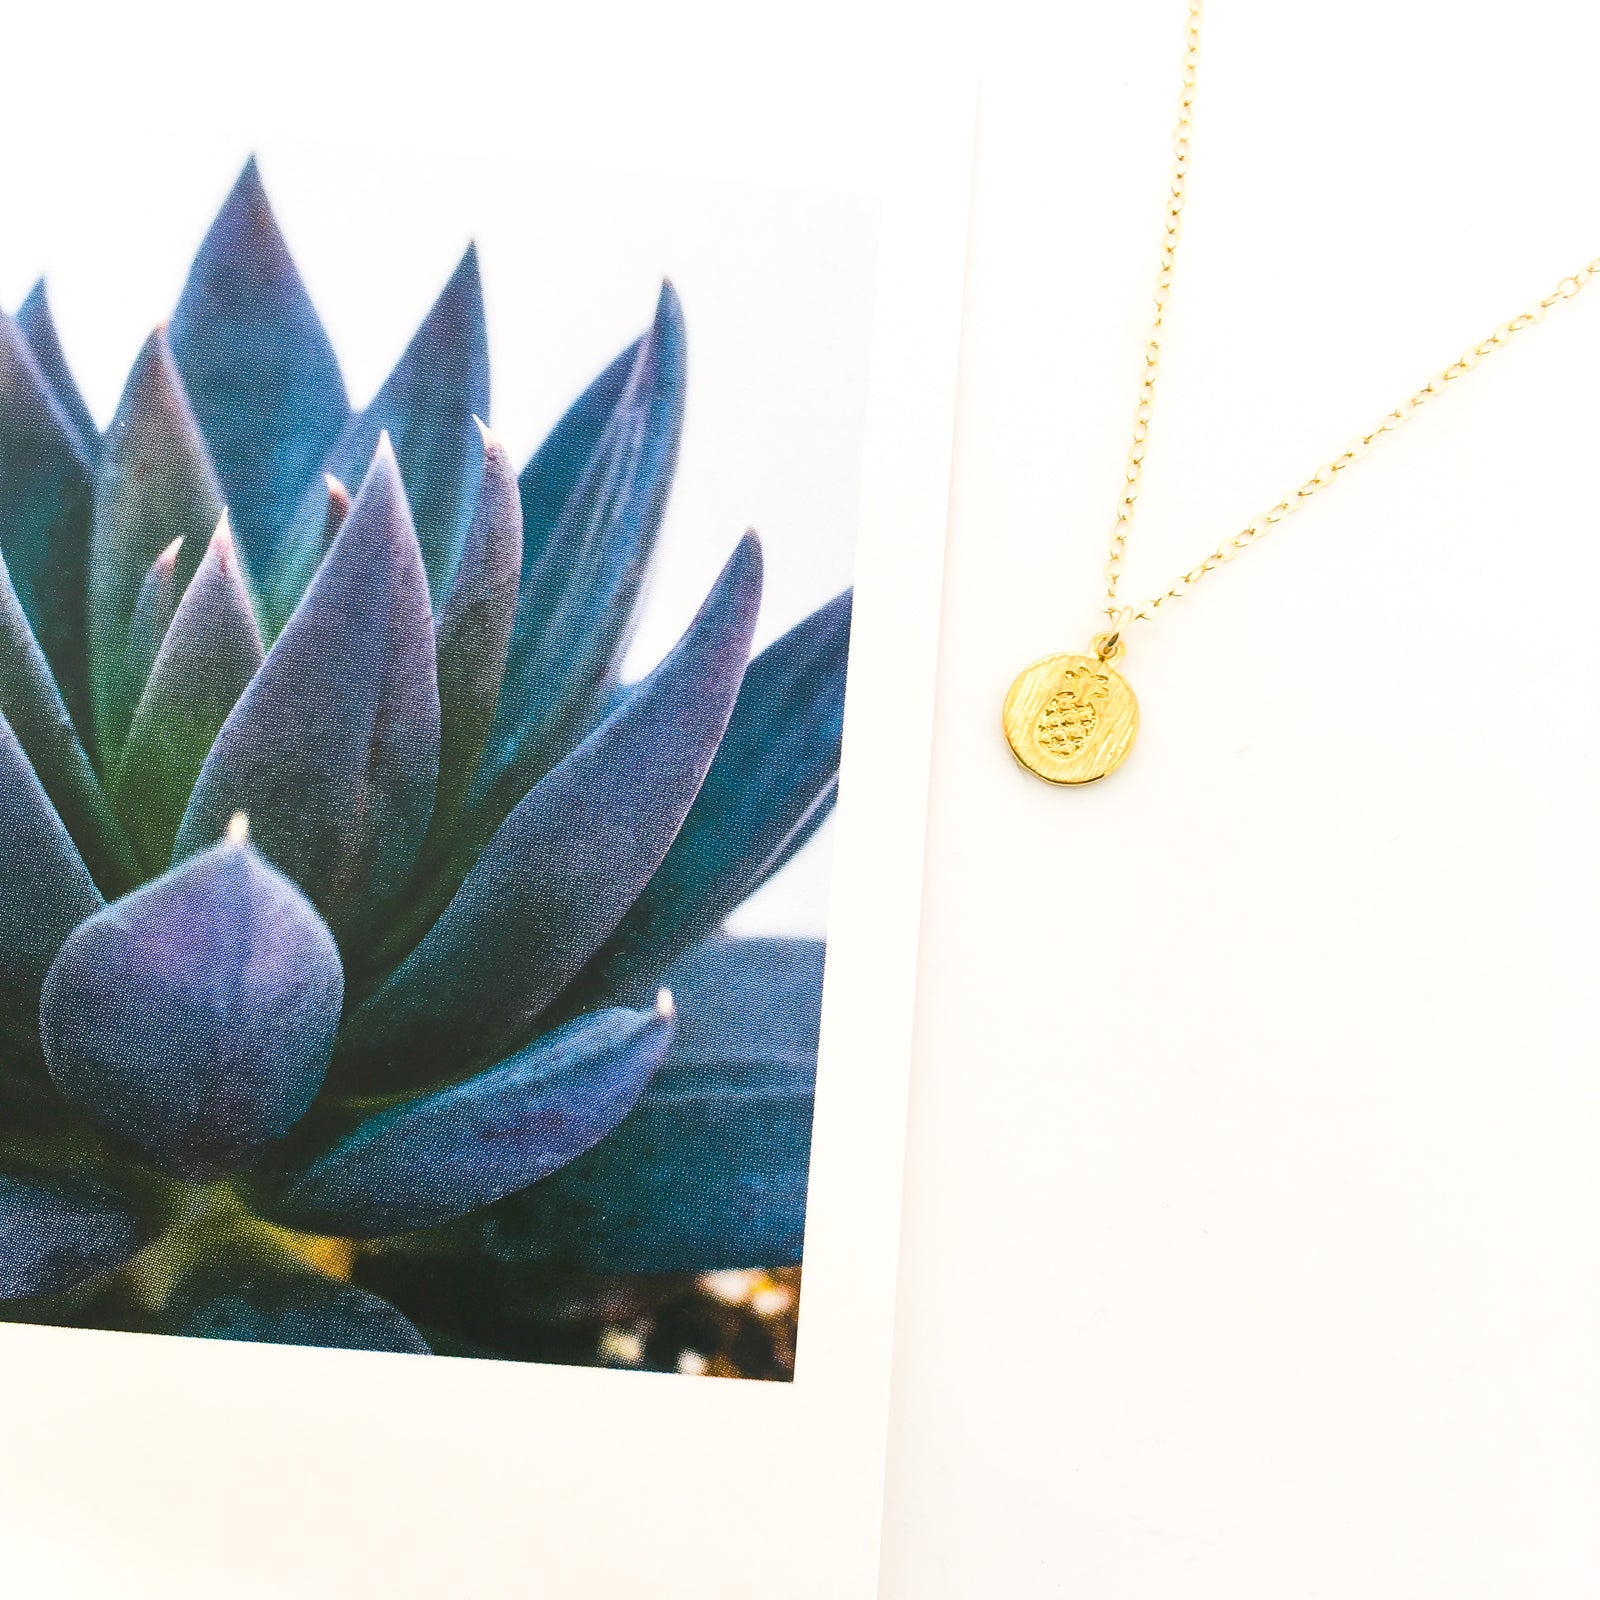 MINI STAMPED PINEAPPLE CHARM NECKLACE | 14K GOLD-FILLED CHAIN